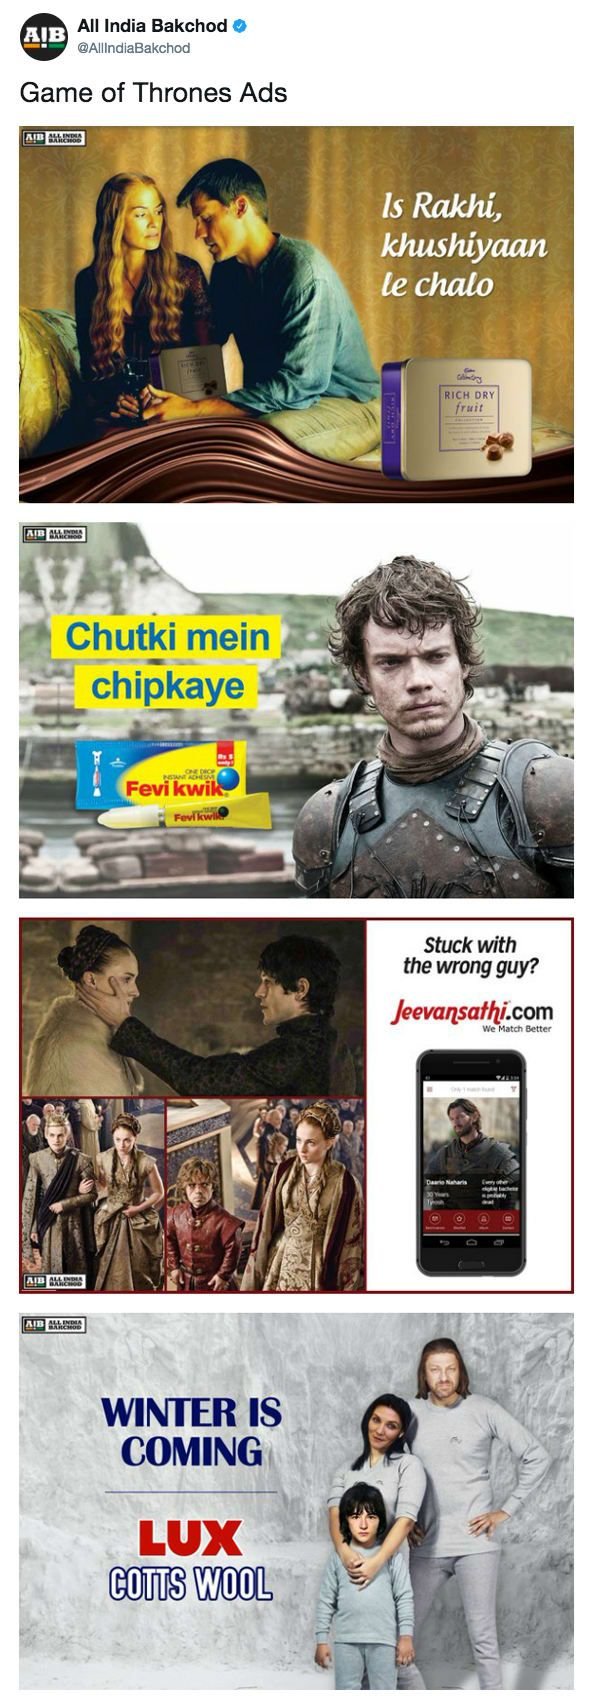 17 Hilarious Jokes Only Indian Game Of Thrones Fans Will Find Funny Funny Games Game Of Thrones Meme Game Of Thrones Funny